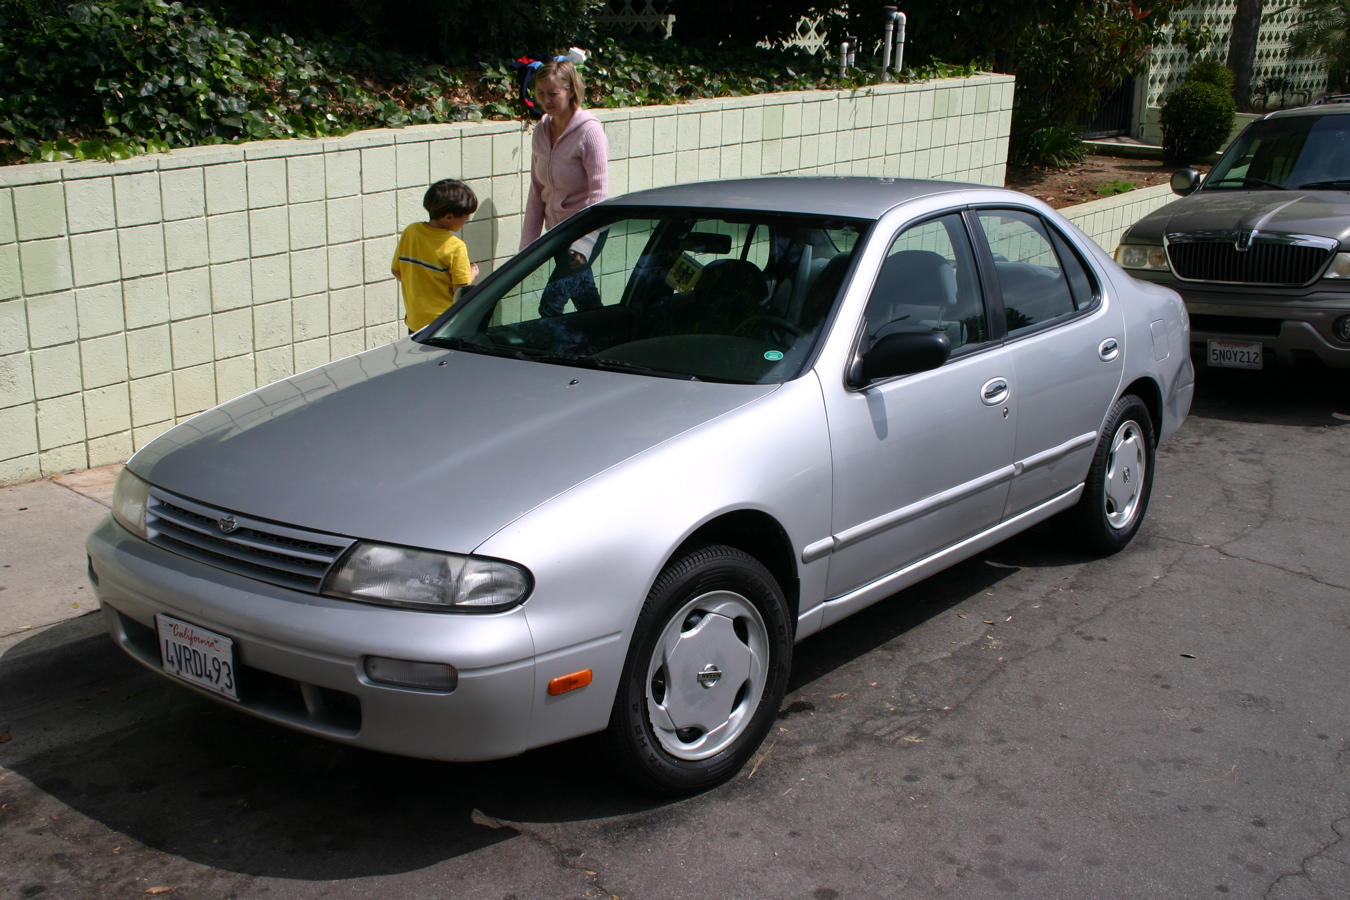 1996 nissan altima gxe 1996 nissan altima 4 dr gxe sedan picture